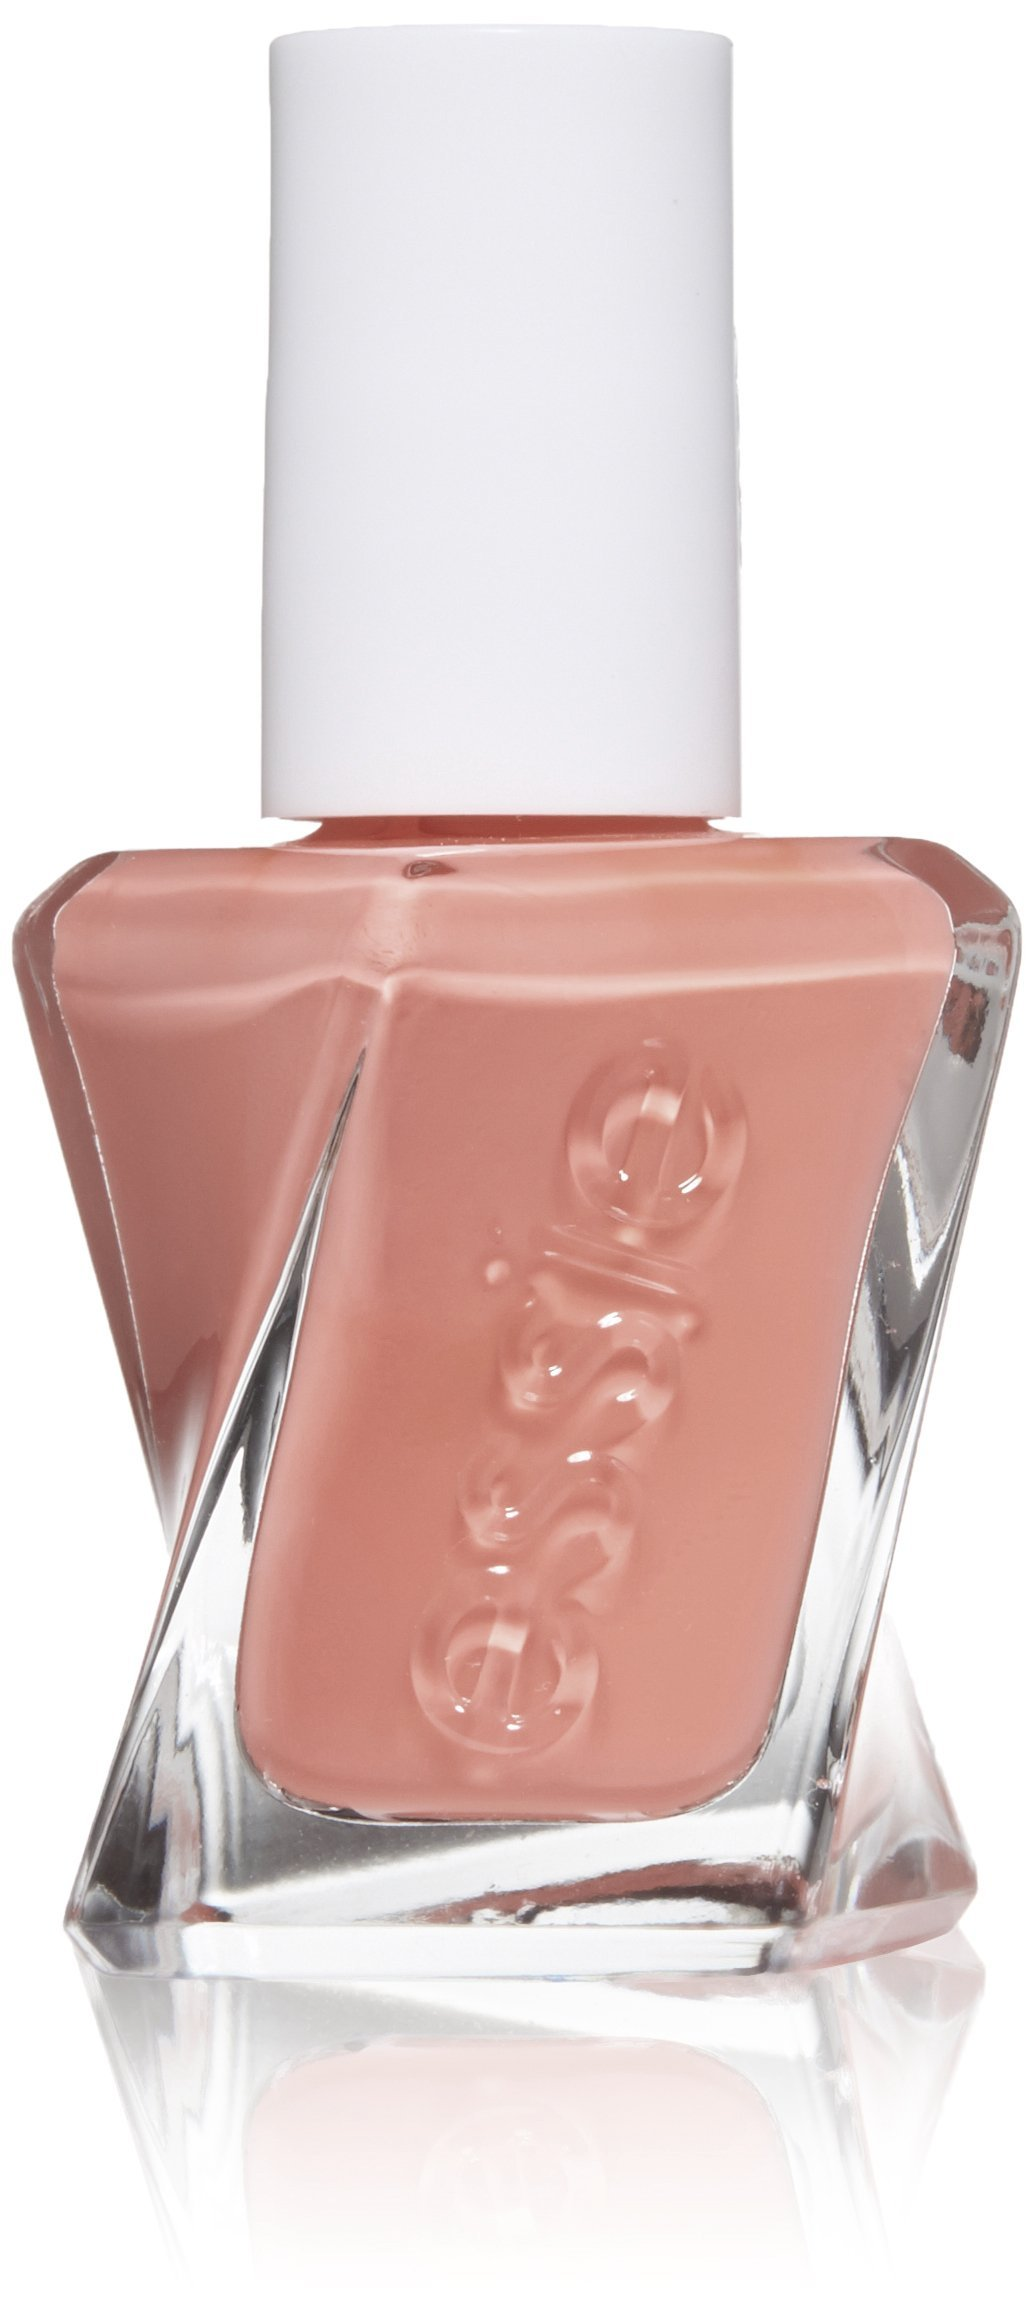 Amazon.com: essie gel couture nail polish, at the barre, nude ...